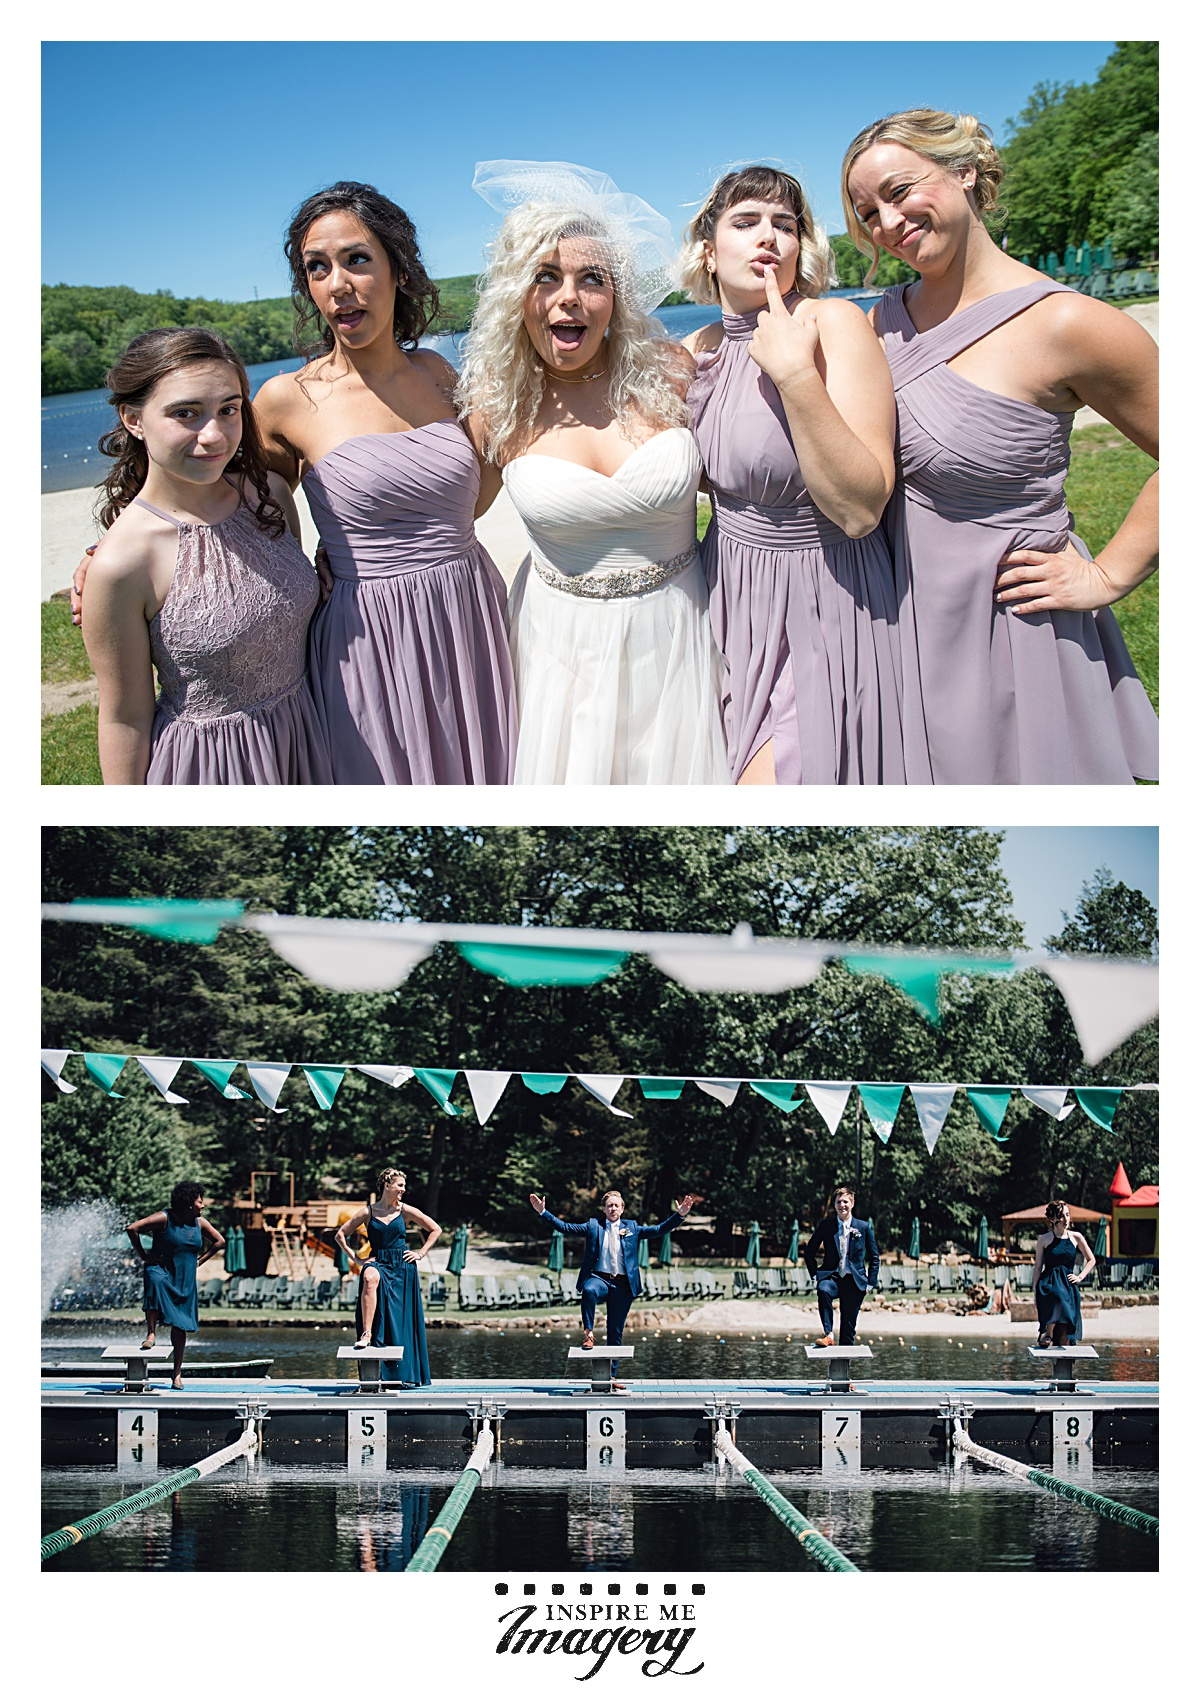 The wedding party was a great group of people, and don't you love the colors of the bridesmaid dresses? The pinks and blues complimented each other so well.